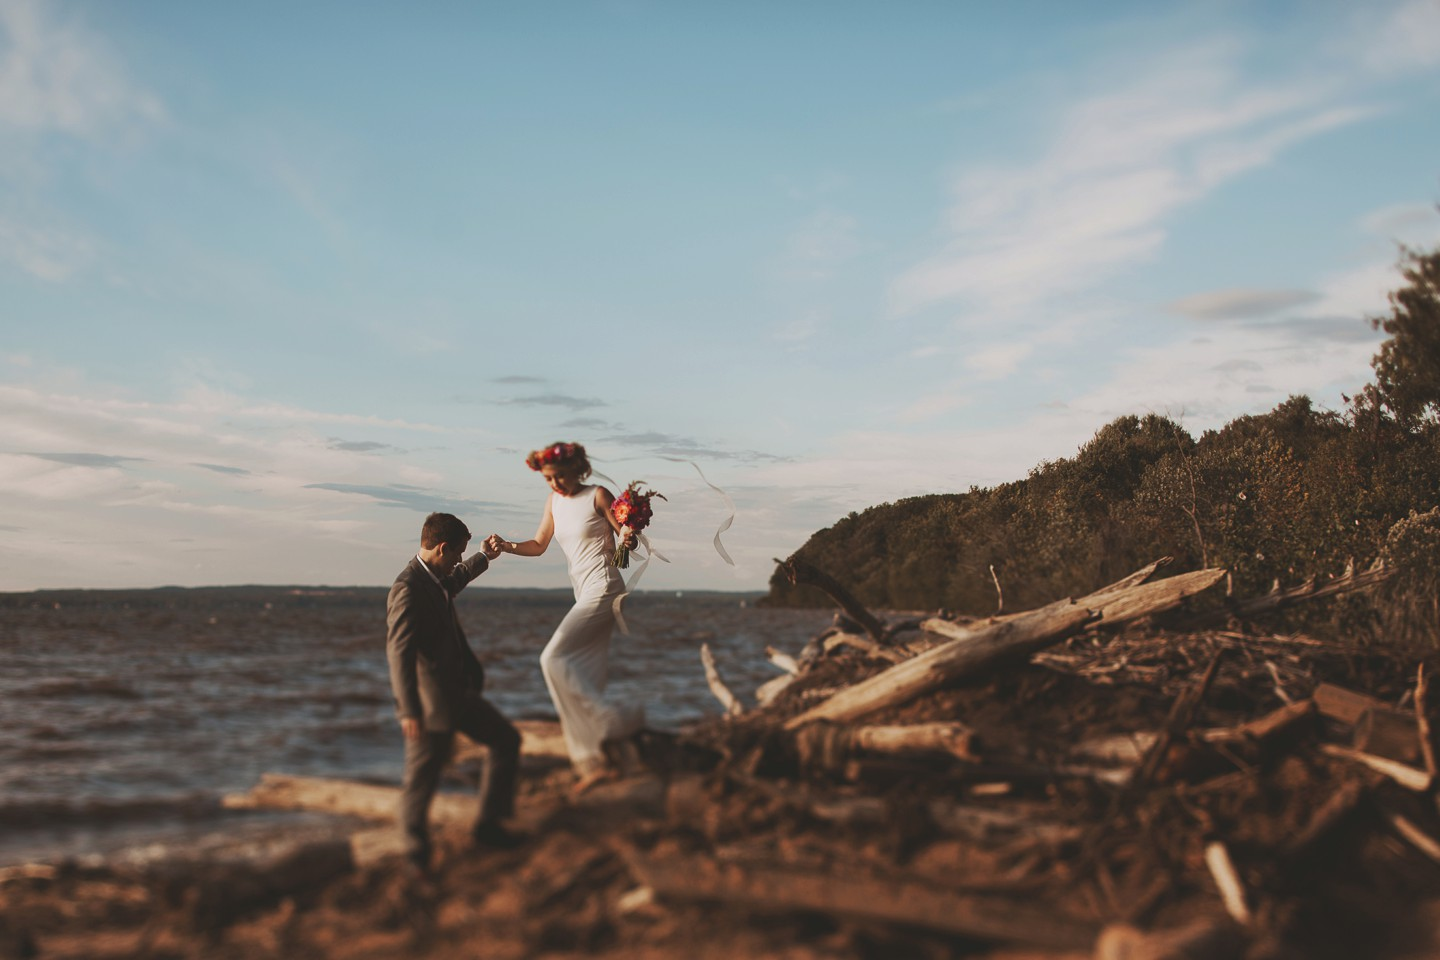 groom helping bride step down from pile of sticks